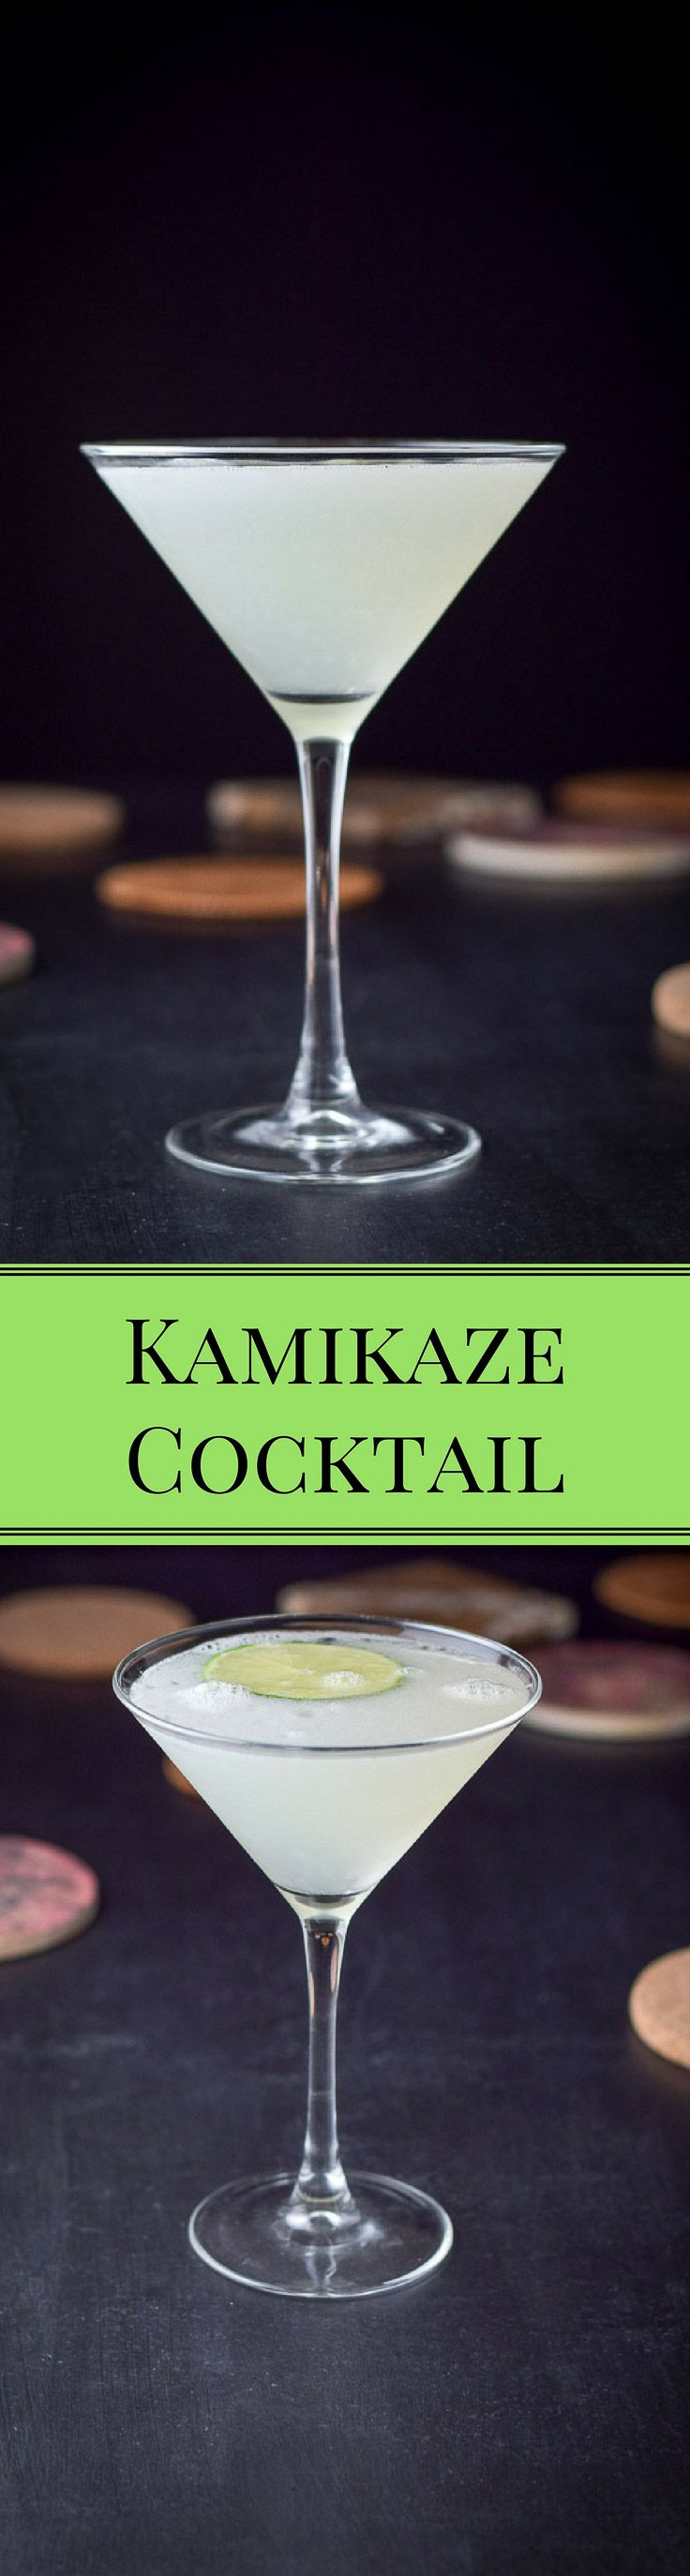 The Kamikaze cocktail.  3 ingredients in equal proportions but although it is easy, it doesn't lack in taste.  It's a classic! http://ddel.co/nkamikaze